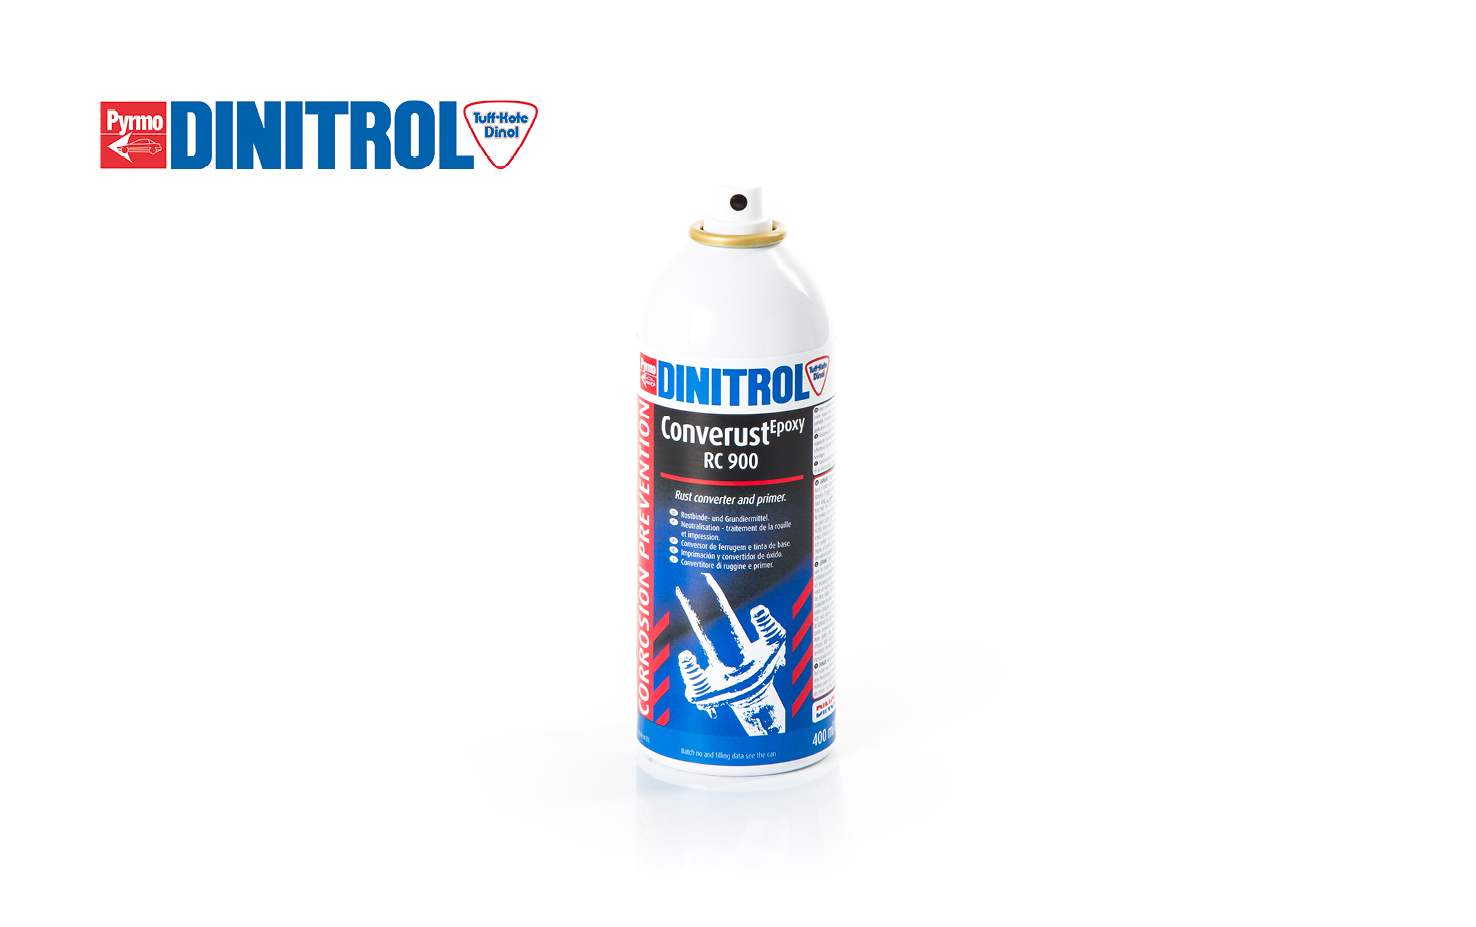 specialist rust remover and rust converter and primer buy DINITROL RC900 converts rust on substrates into a stable organic iron complex, classic car restoration